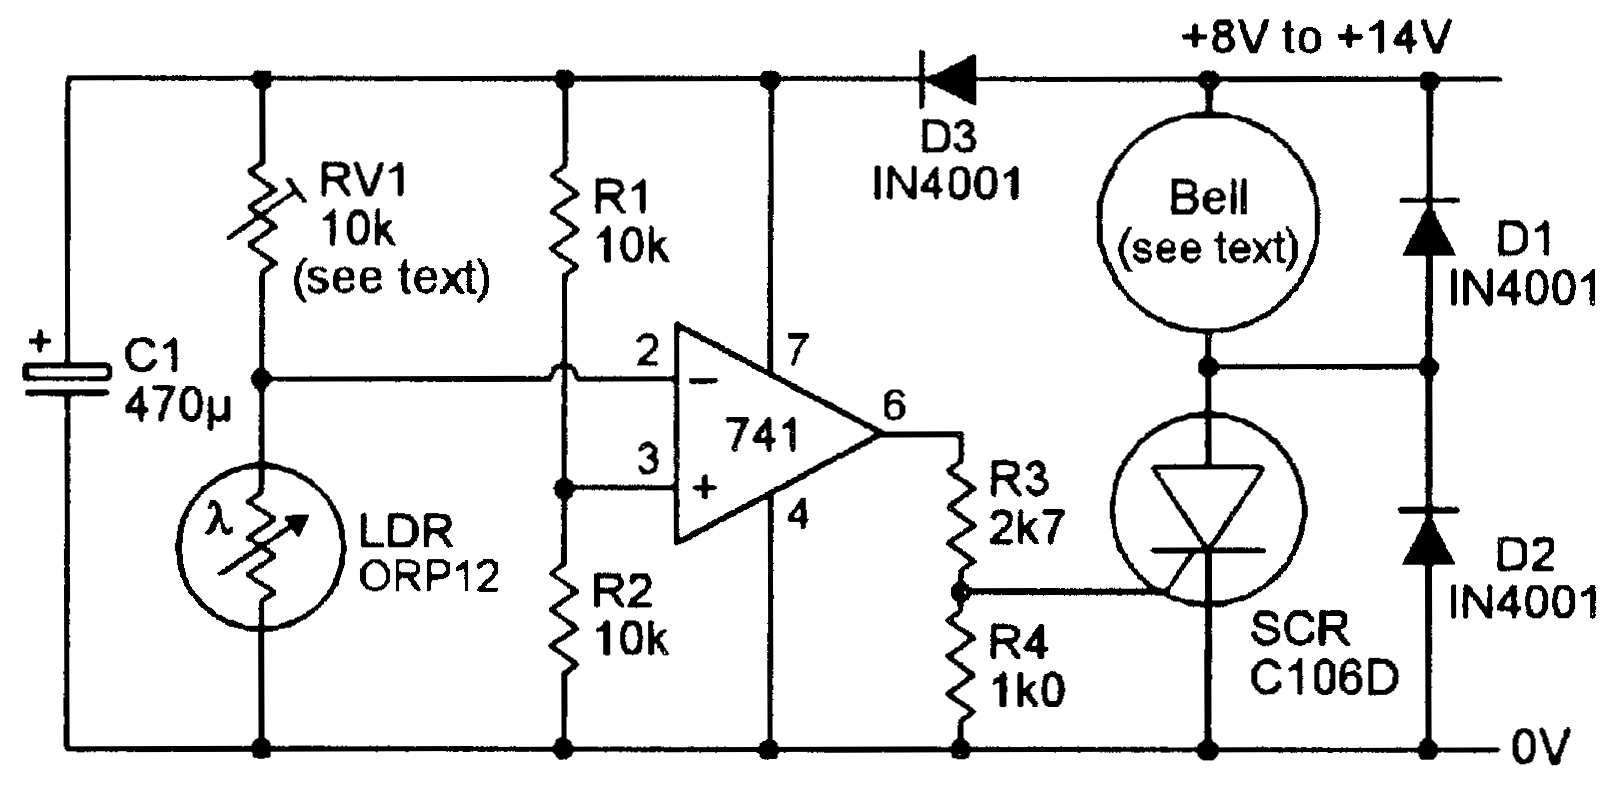 Light Sensitive Circuits Nuts Volts Magazine Ne555 Siren Alarm Indicator Tone Generator Circuit Diagram A Bell Output Ldr